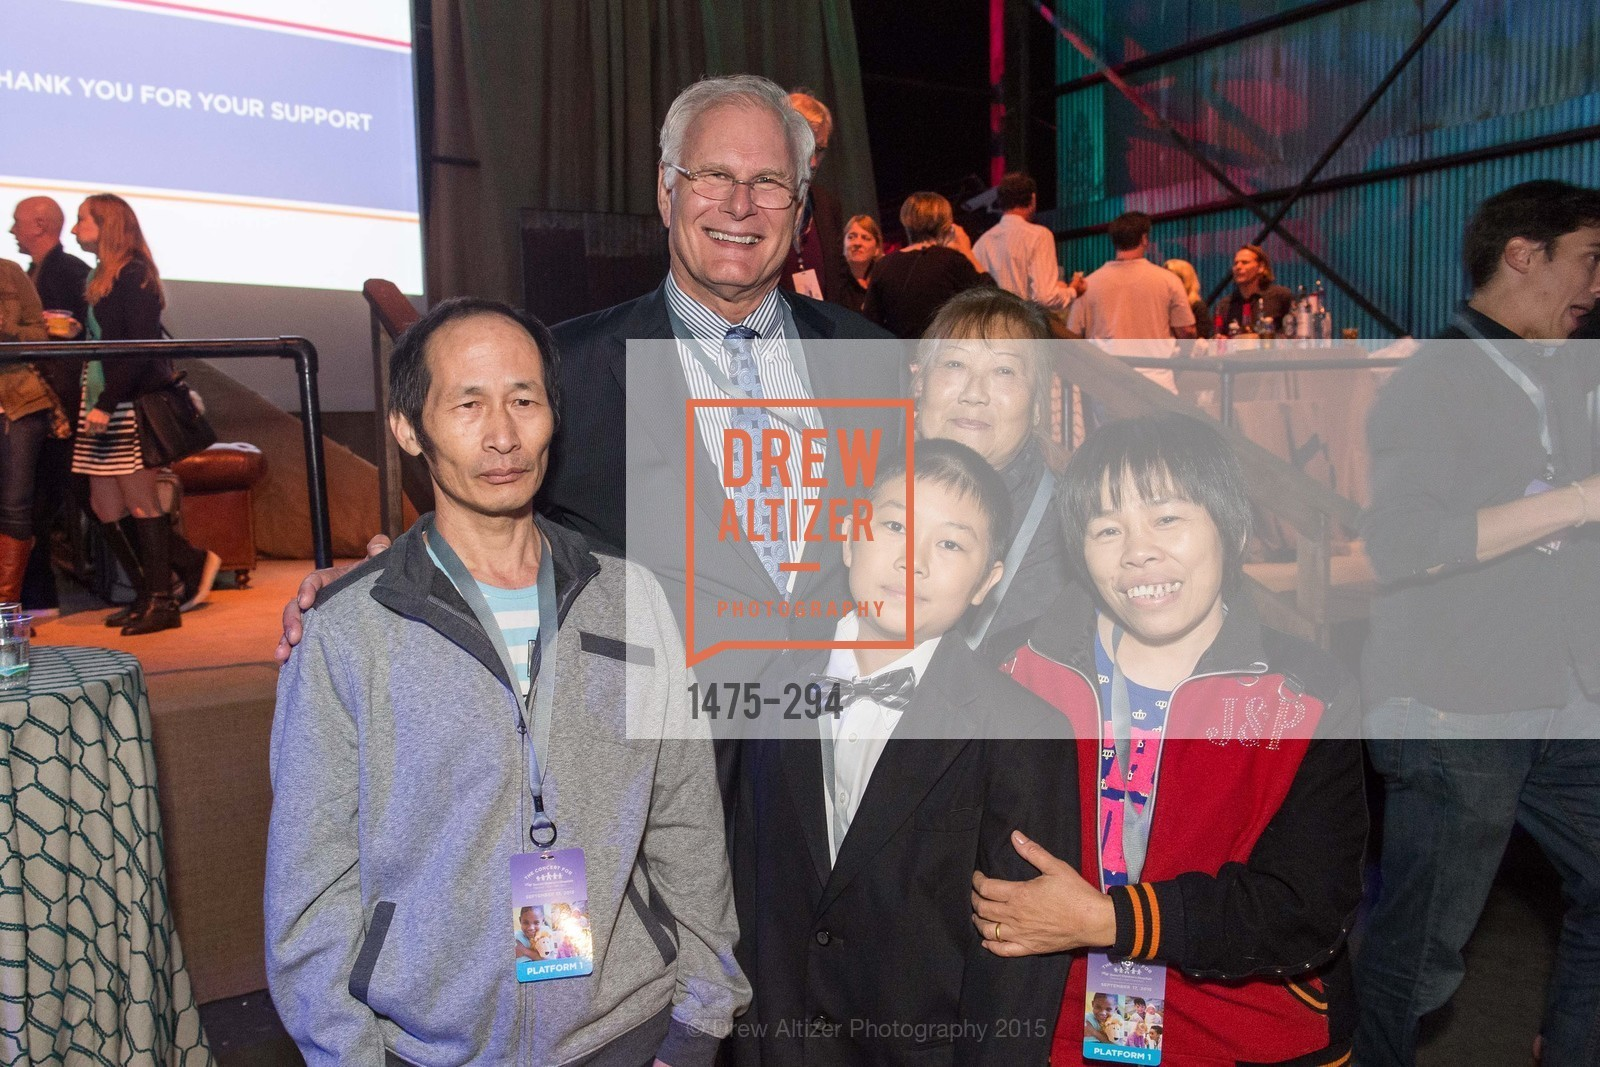 Chong Zhao, Mark Laret, Zhenkang Zhao, Grace Chan, The Concert For UCSF Benioff Children's Hospital, Pier 70, September 17th, 2015,Drew Altizer, Drew Altizer Photography, full-service event agency, private events, San Francisco photographer, photographer California